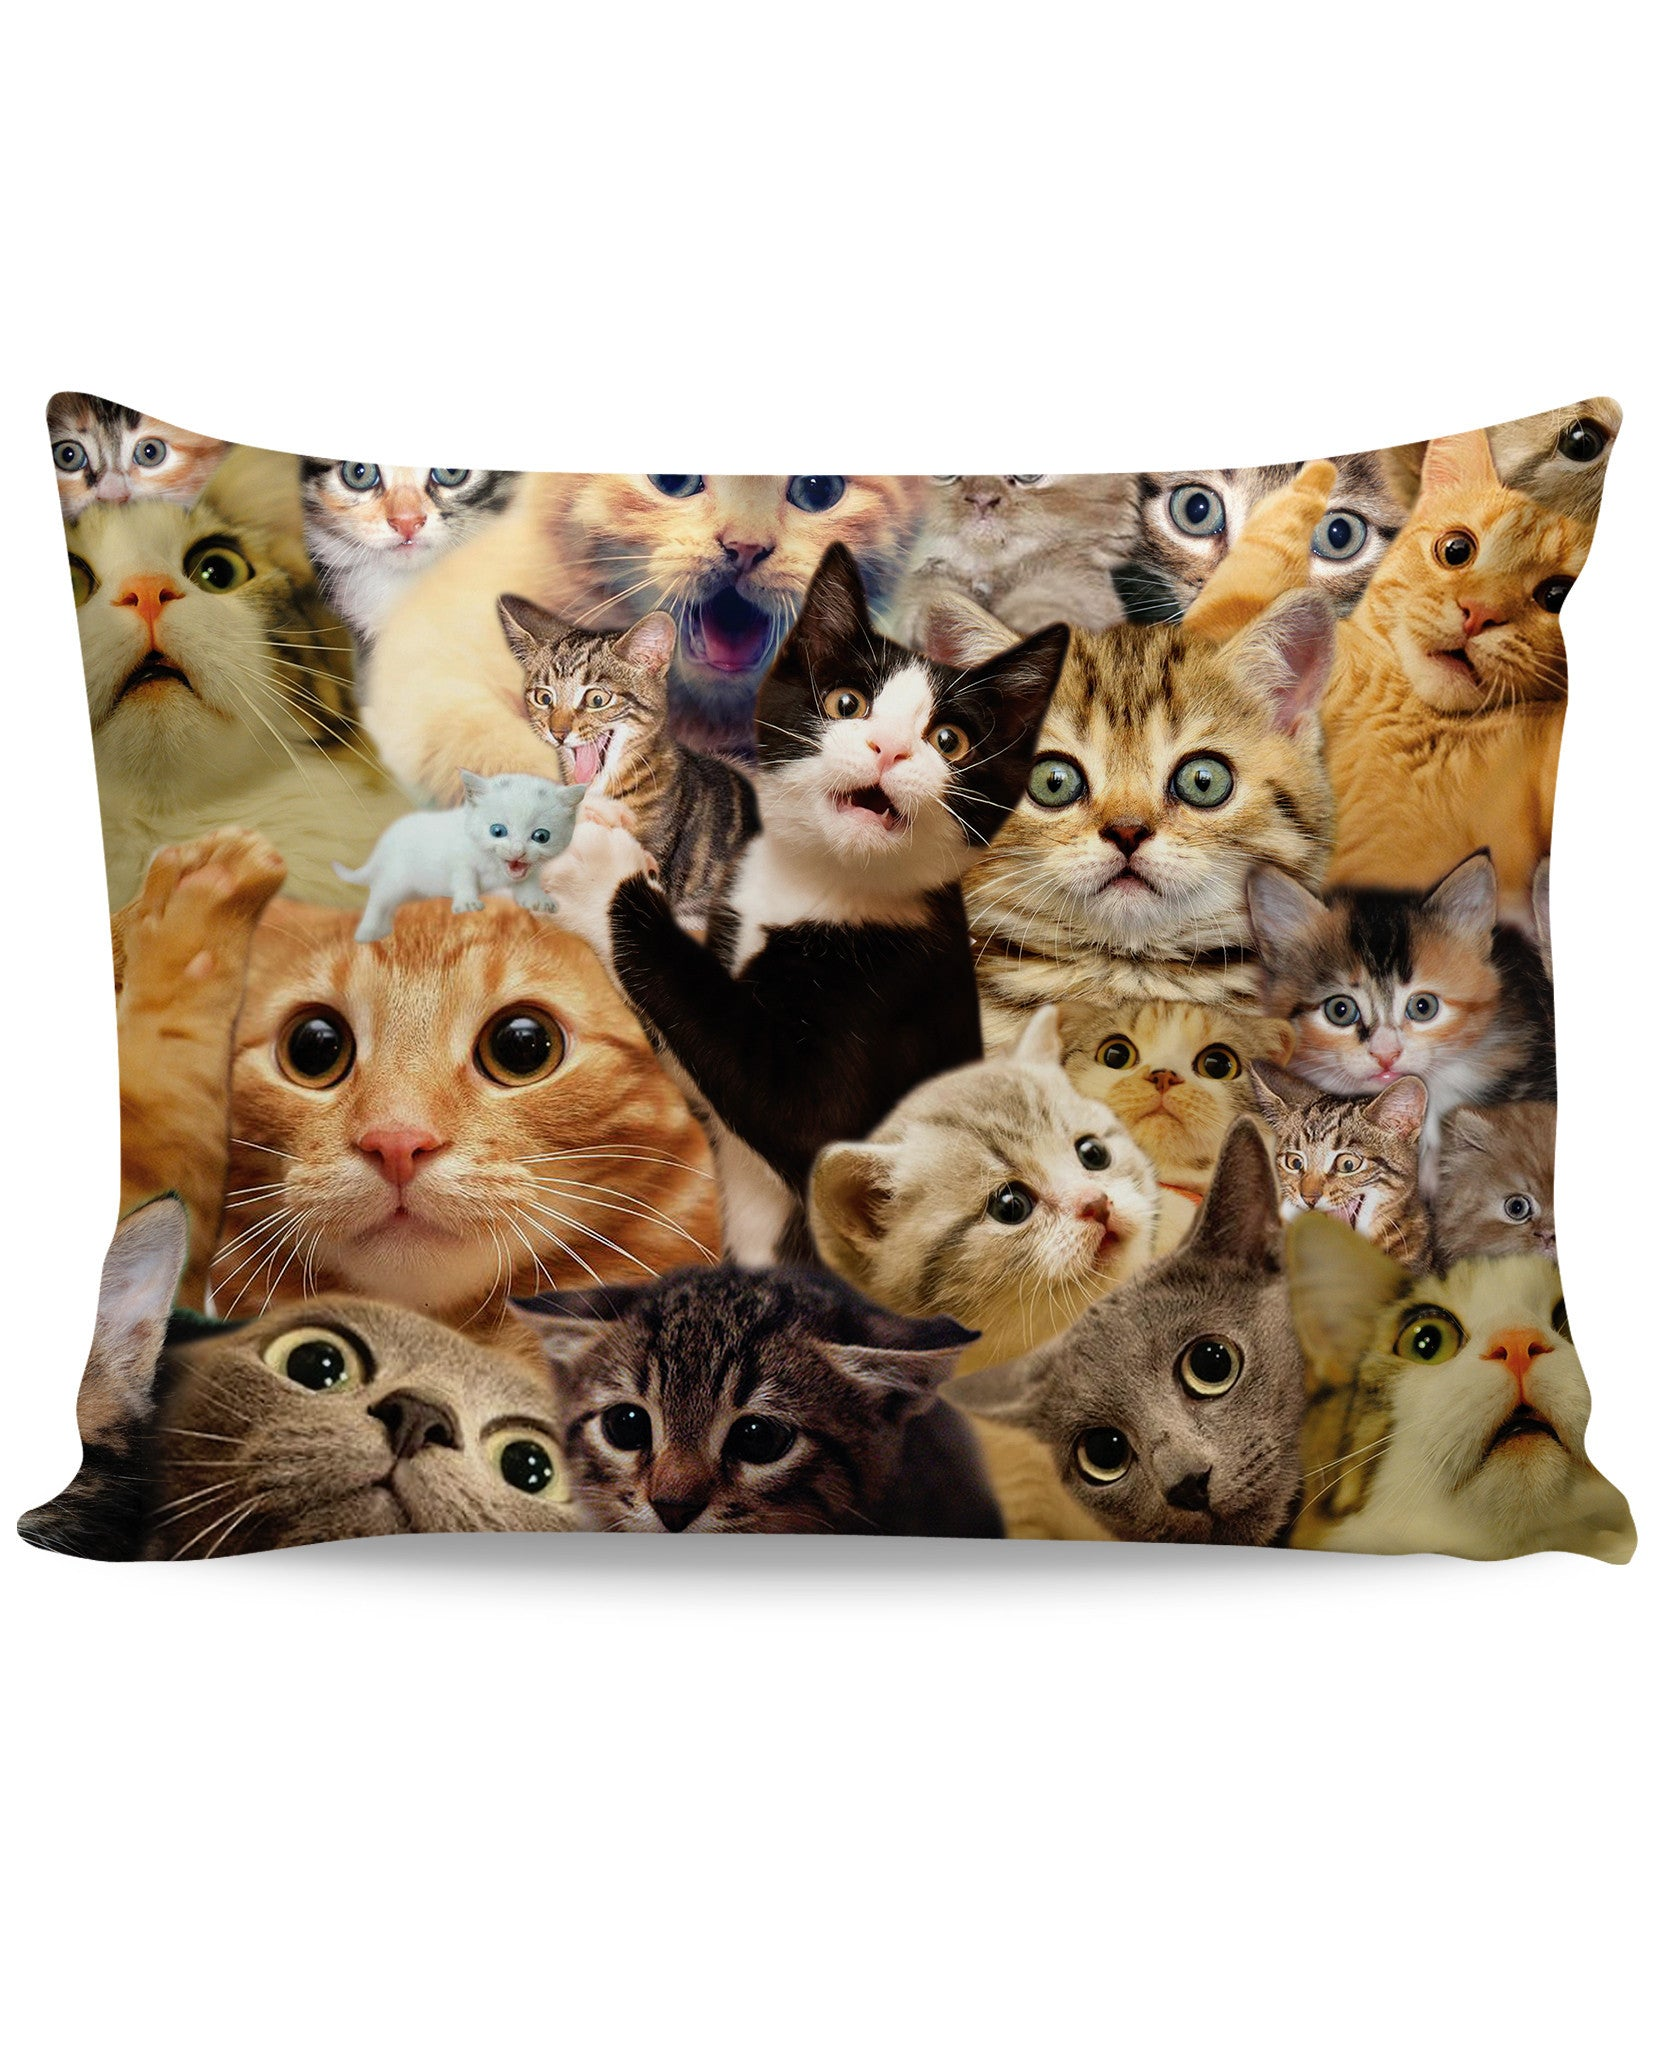 Surprised Cats Pillow Case - Love Kitty Cat